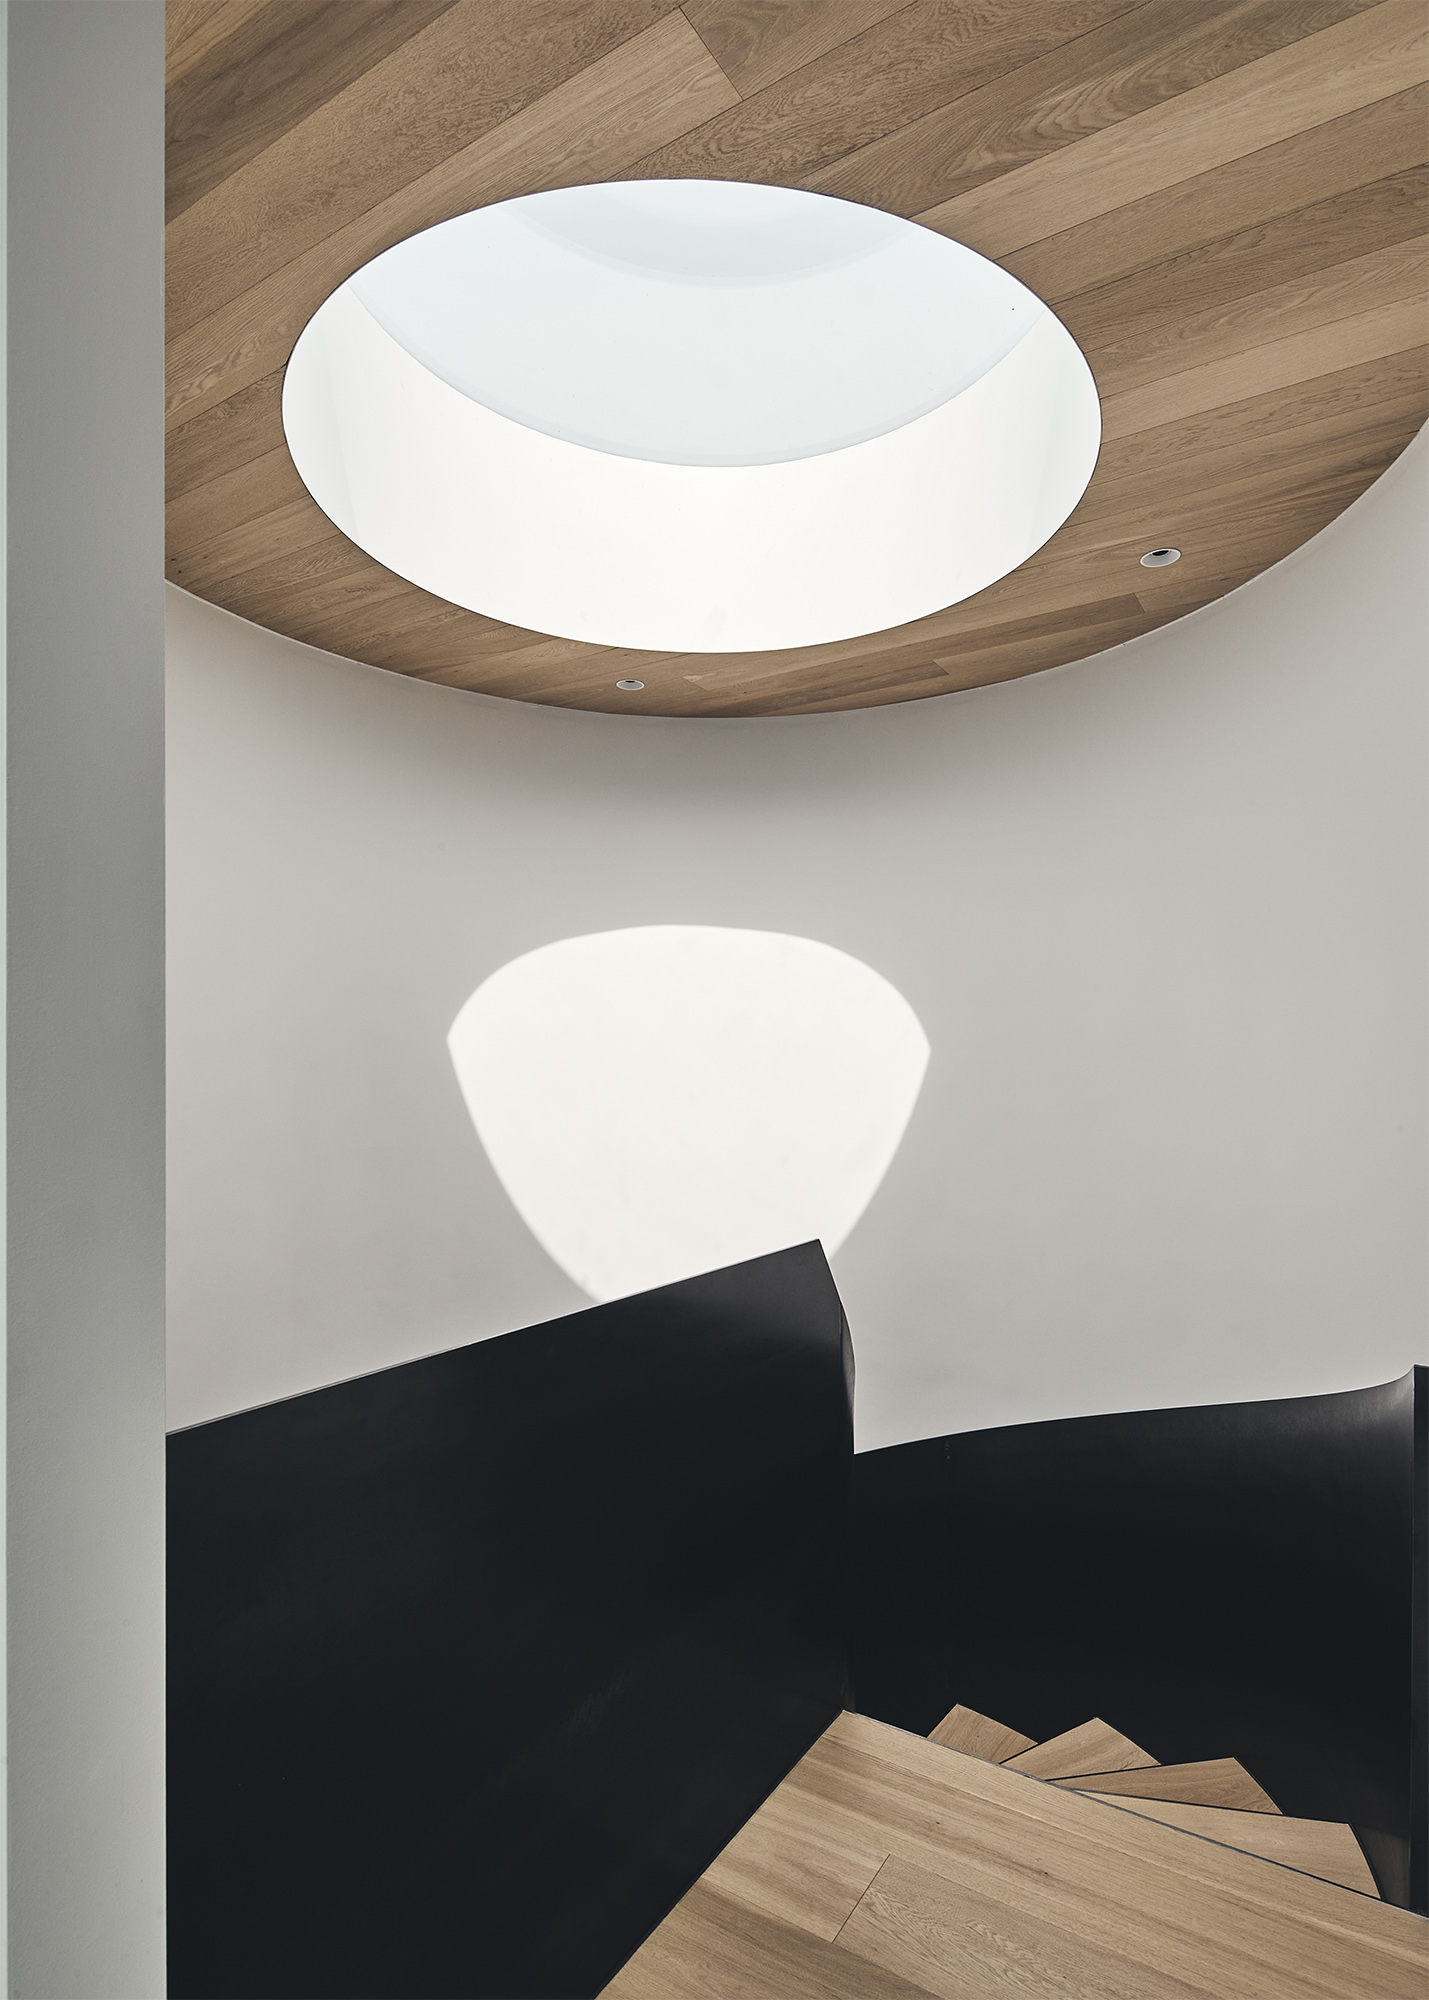 the circular hole in the ceiling let the sunlight enters the house